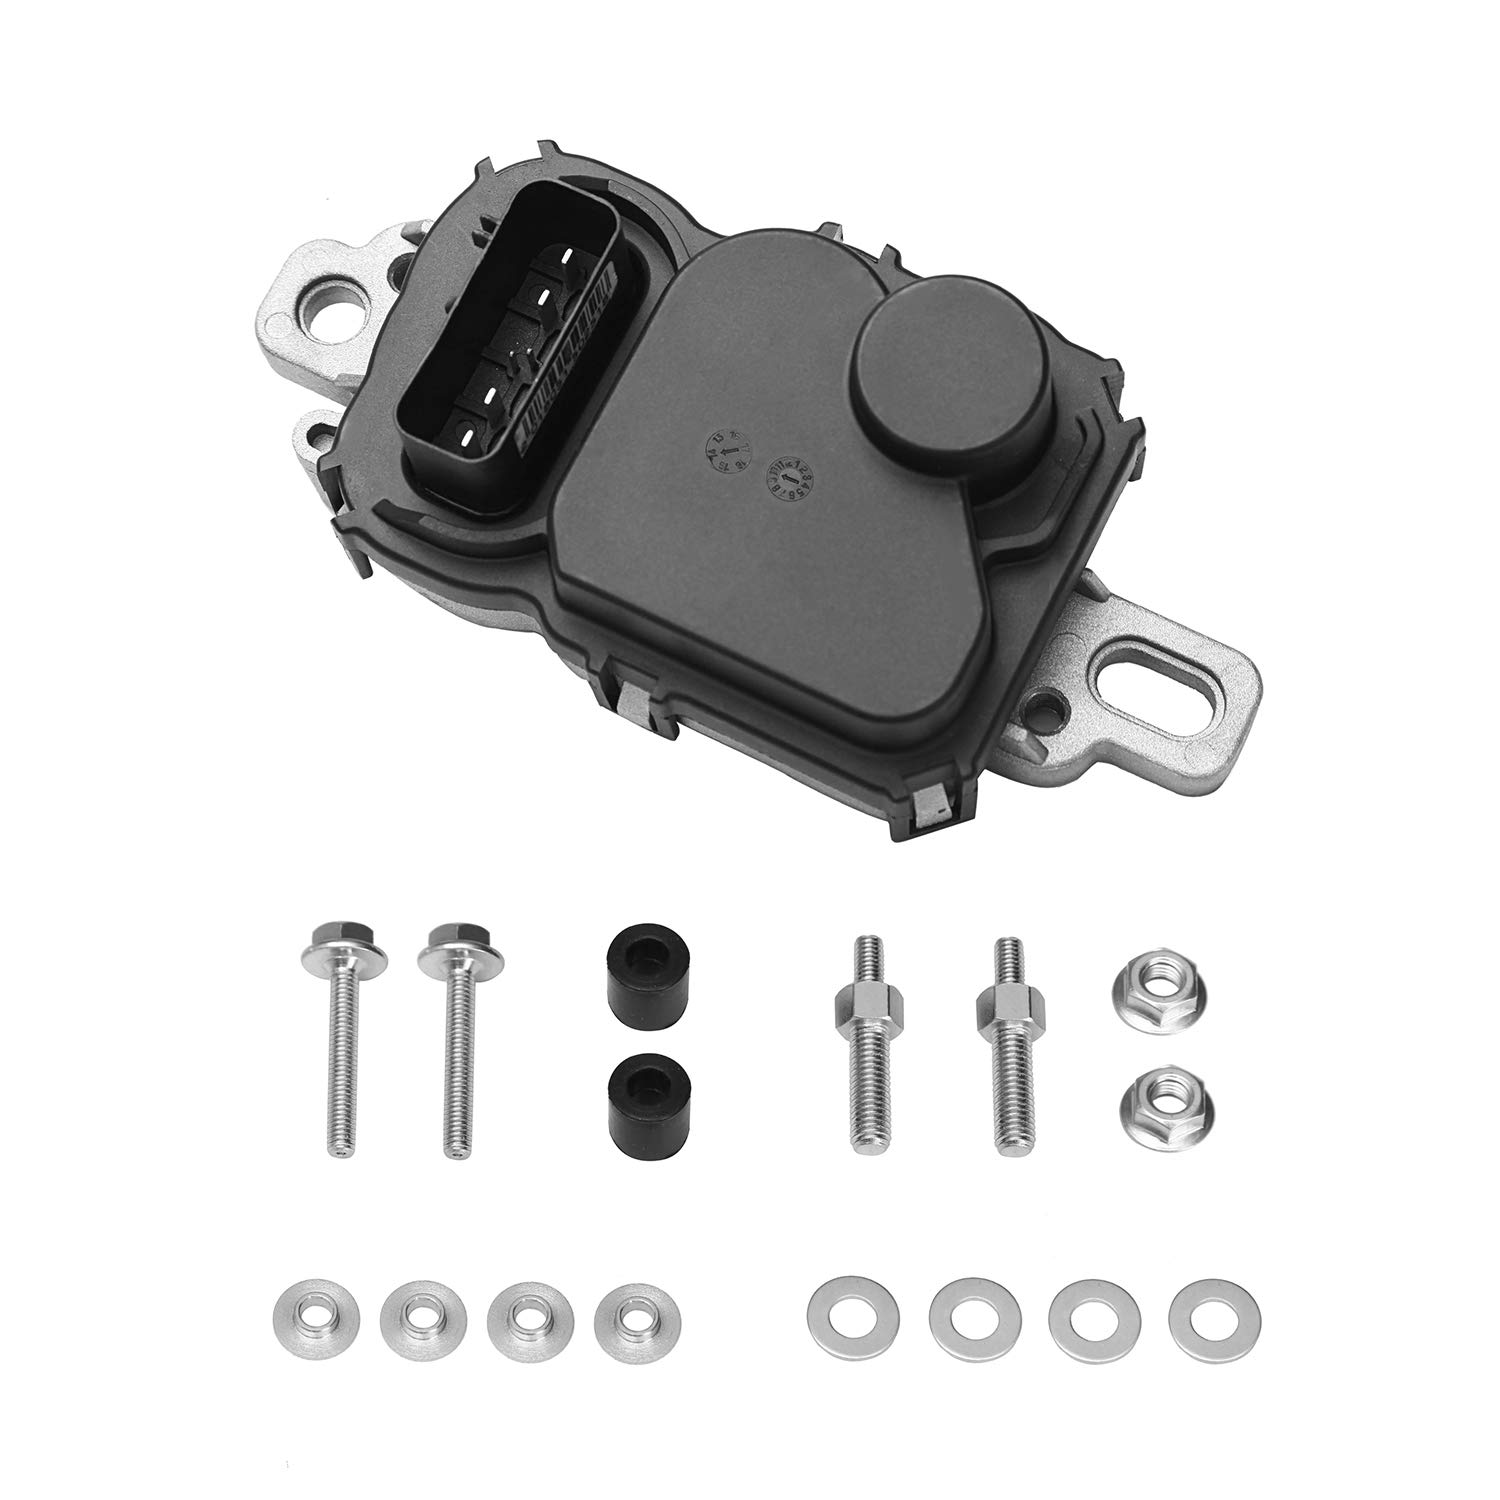 2005-2011 Lincoln 2005-2011 Mercury Models 5L8Z-9D37O-A 5L8A-9D370-AA 2005-2011 Mazda for 2004-2011 Ford Replace# 590-001 4C2A-9D372-BA Gledewen Fuel Pump Driver Module with Mounting Bolts